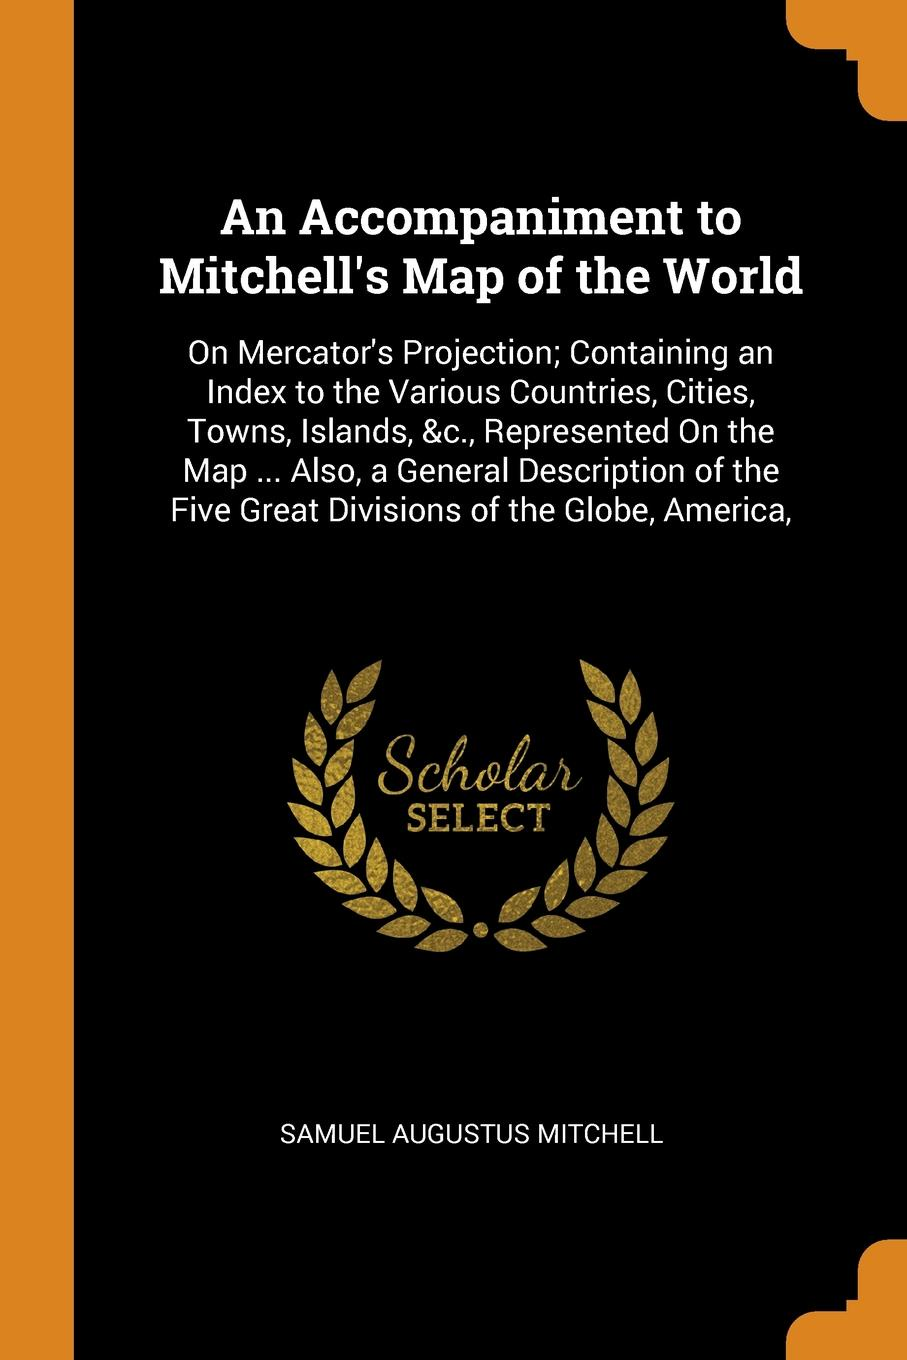 Samuel Augustus Mitchell An Accompaniment to Mitchell's Map of the World. On Mercator's Projection; Containing an Index to the Various Countries, Cities, Towns, Islands, &c., Represented On the Map ... Also, a General Description of the Five Great Divisions of the Globe, ... felix j palma the map of time and the turn of the screw